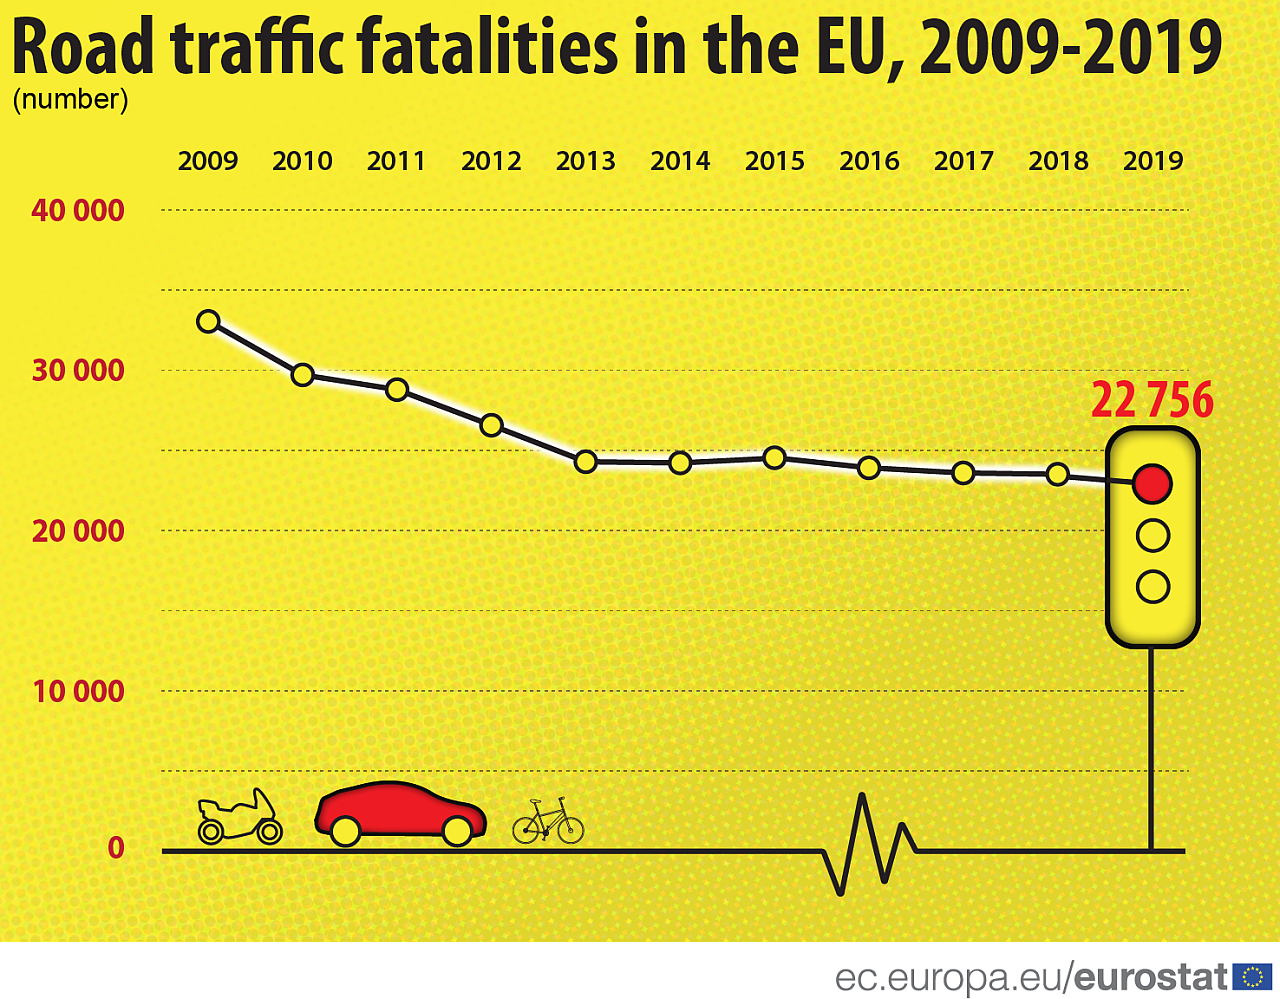 number_of_road_traffic_fatalities_in_the_eu_m.png